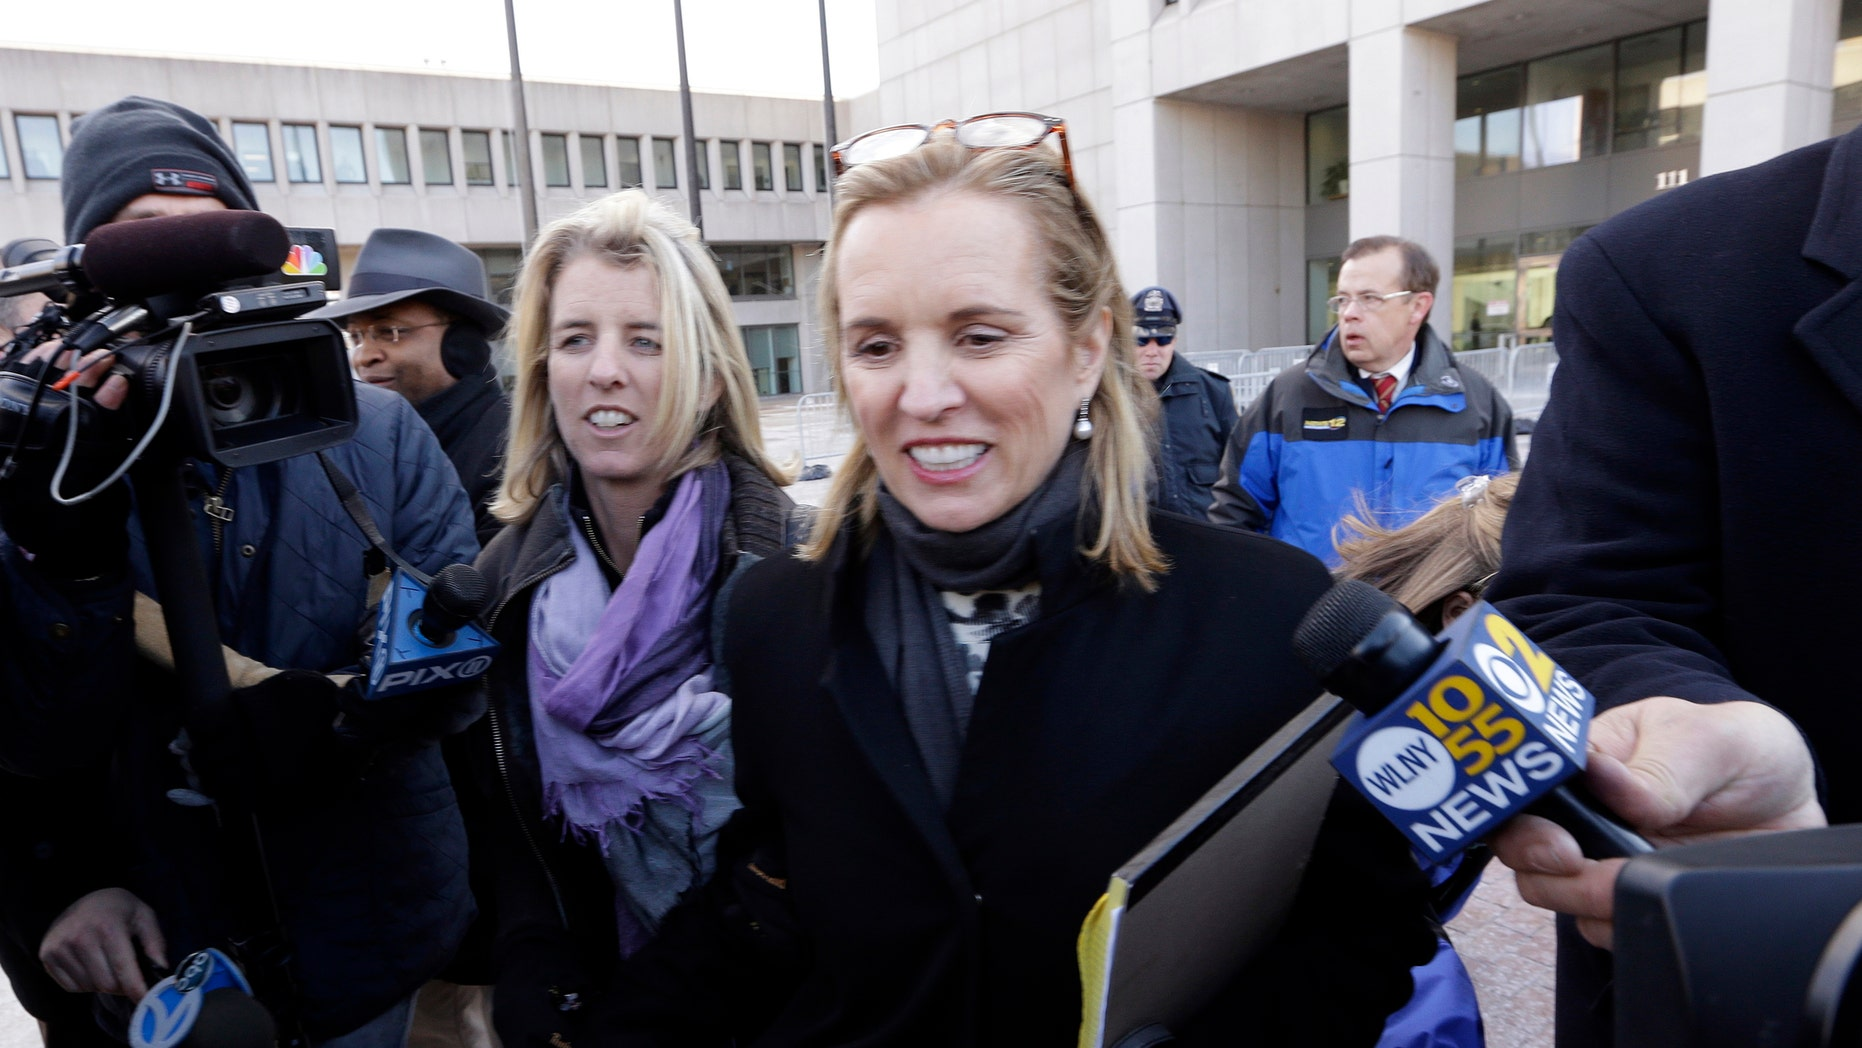 FILE - In this Feb. 26, 2014 file photo, Kerry Kennedy, center, leaves Westchester County courthouse with Rory Kennedy, left, in White Plains, N.Y.  Kennedy was acquitted Friday, Feb. 28, 2014,  of drugged driving after she accidentally took a sleeping pill and then sideswiped a truck in a wild highway drive she said she didn't remember. Kennedy hugged and clasped hands with her lawyers as a six-person jury cleared her of driving while impaired, a misdemeanor. (AP Photo/Frank Franklin II)